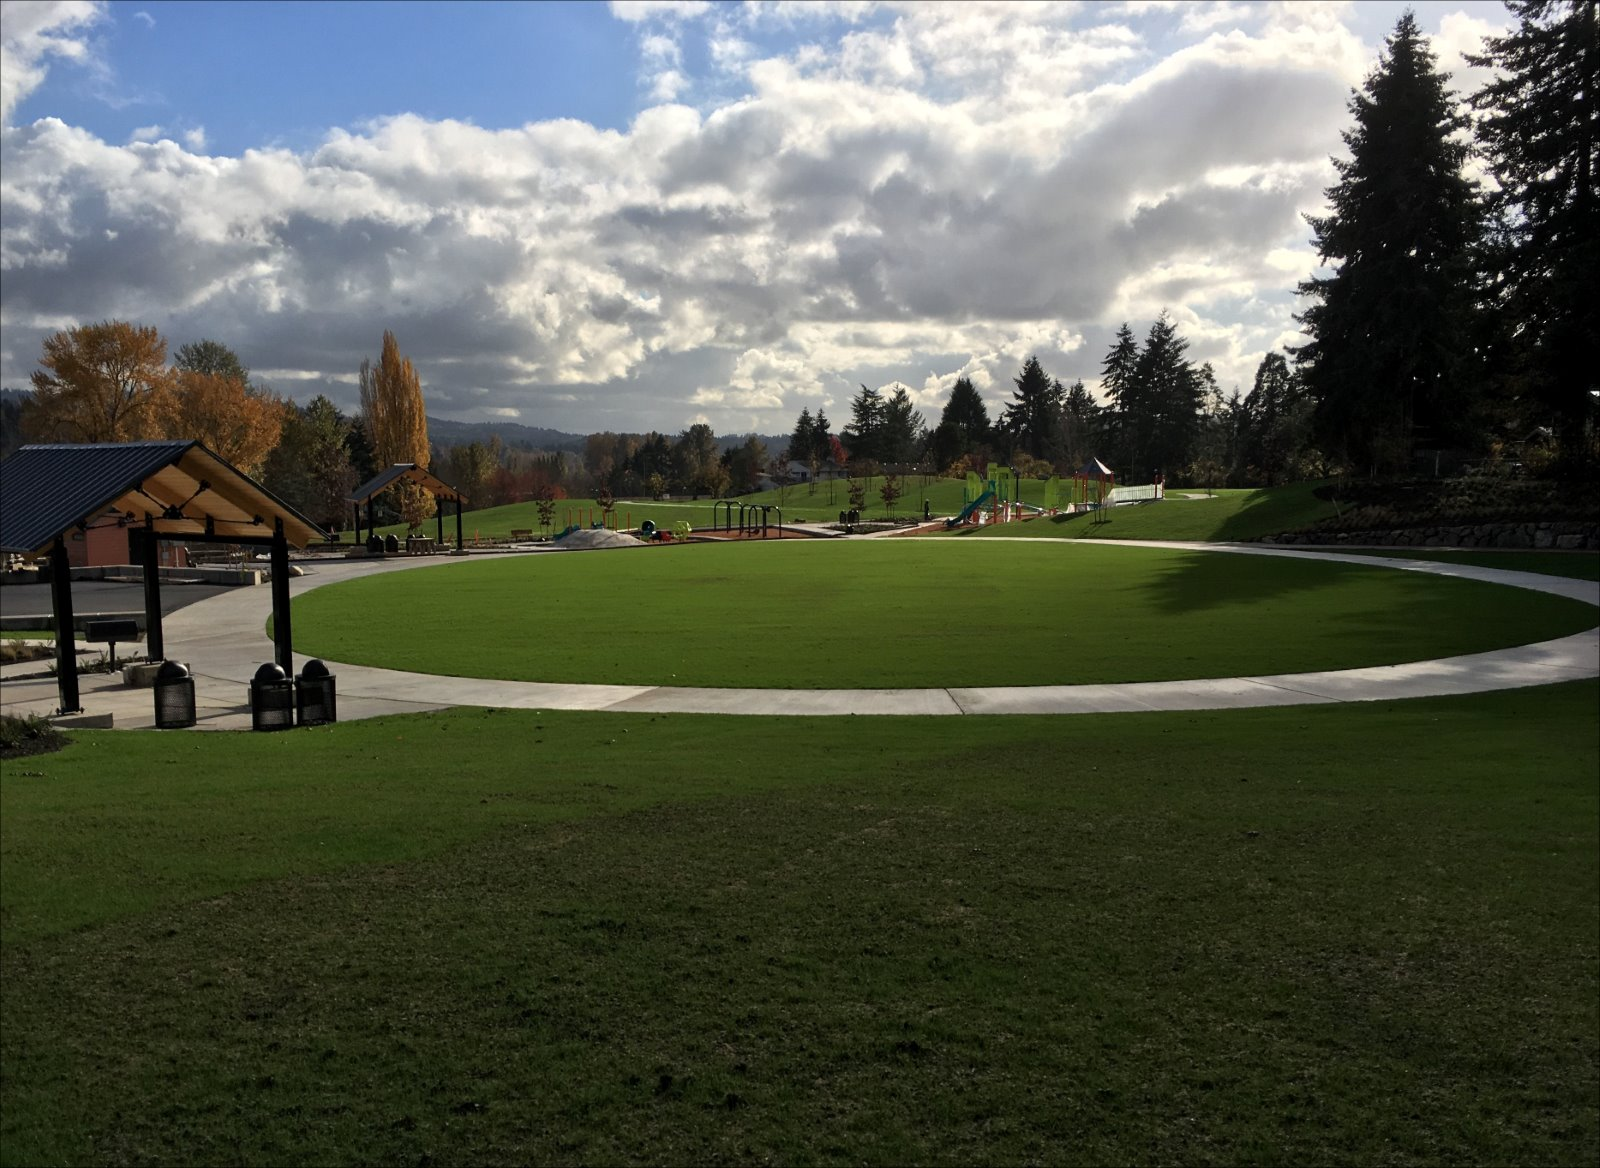 Photo of Surrey Downs Park construction with newly-planted l